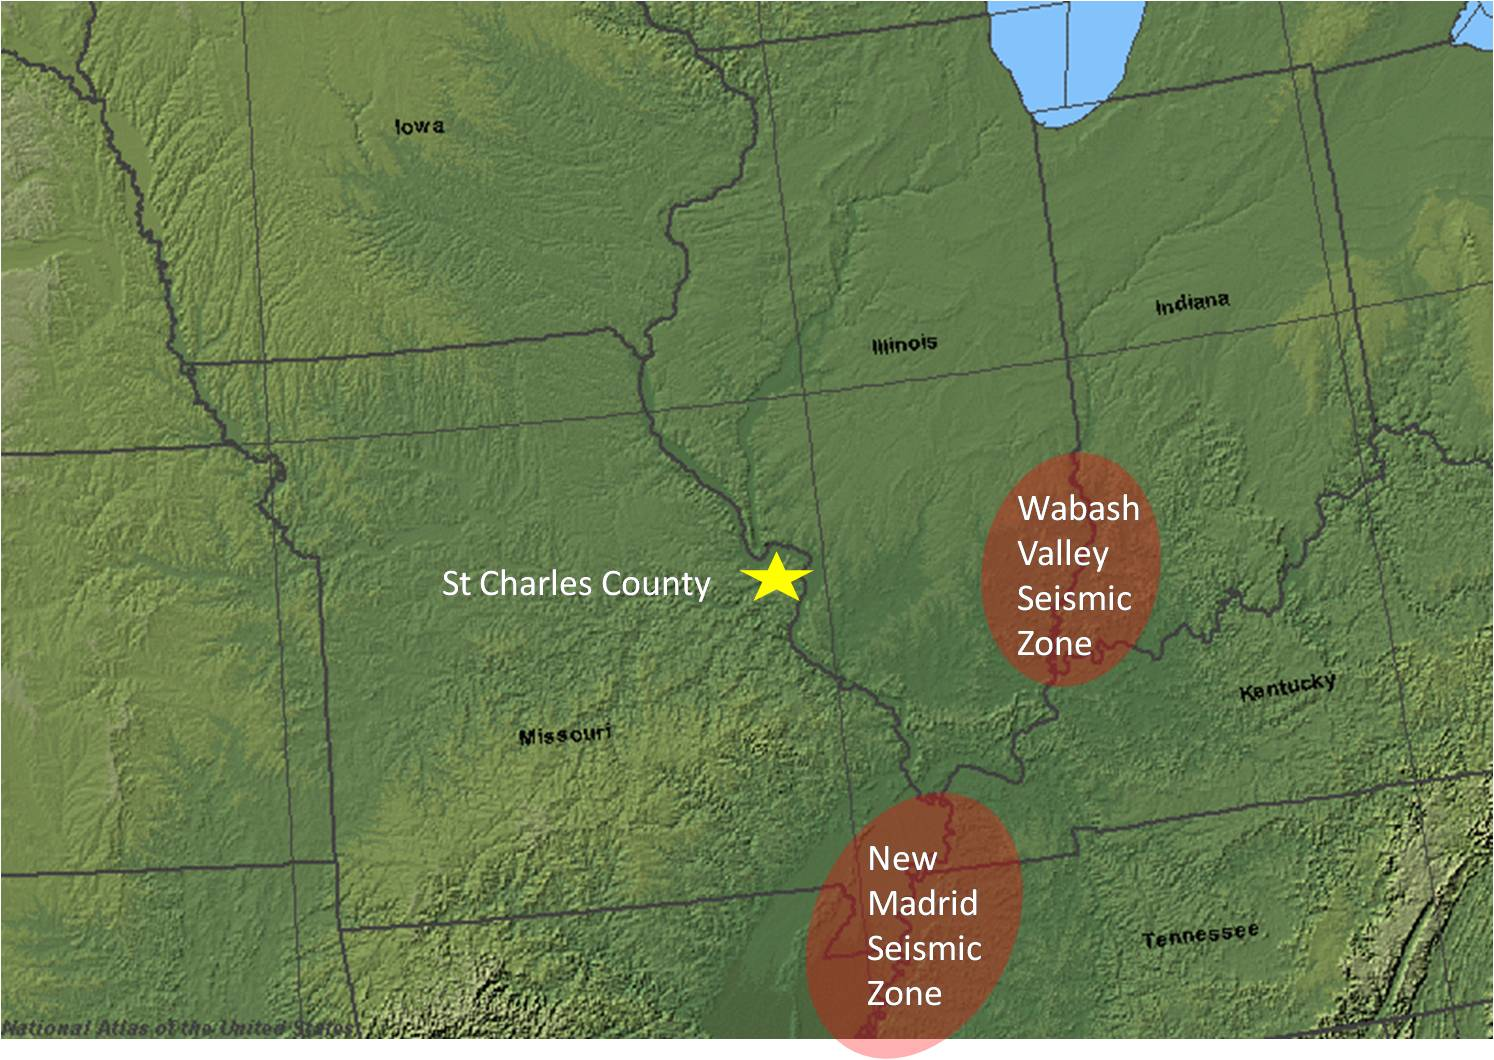 Earthquake st charles county mo official website map with locations of seismic zones gumiabroncs Choice Image